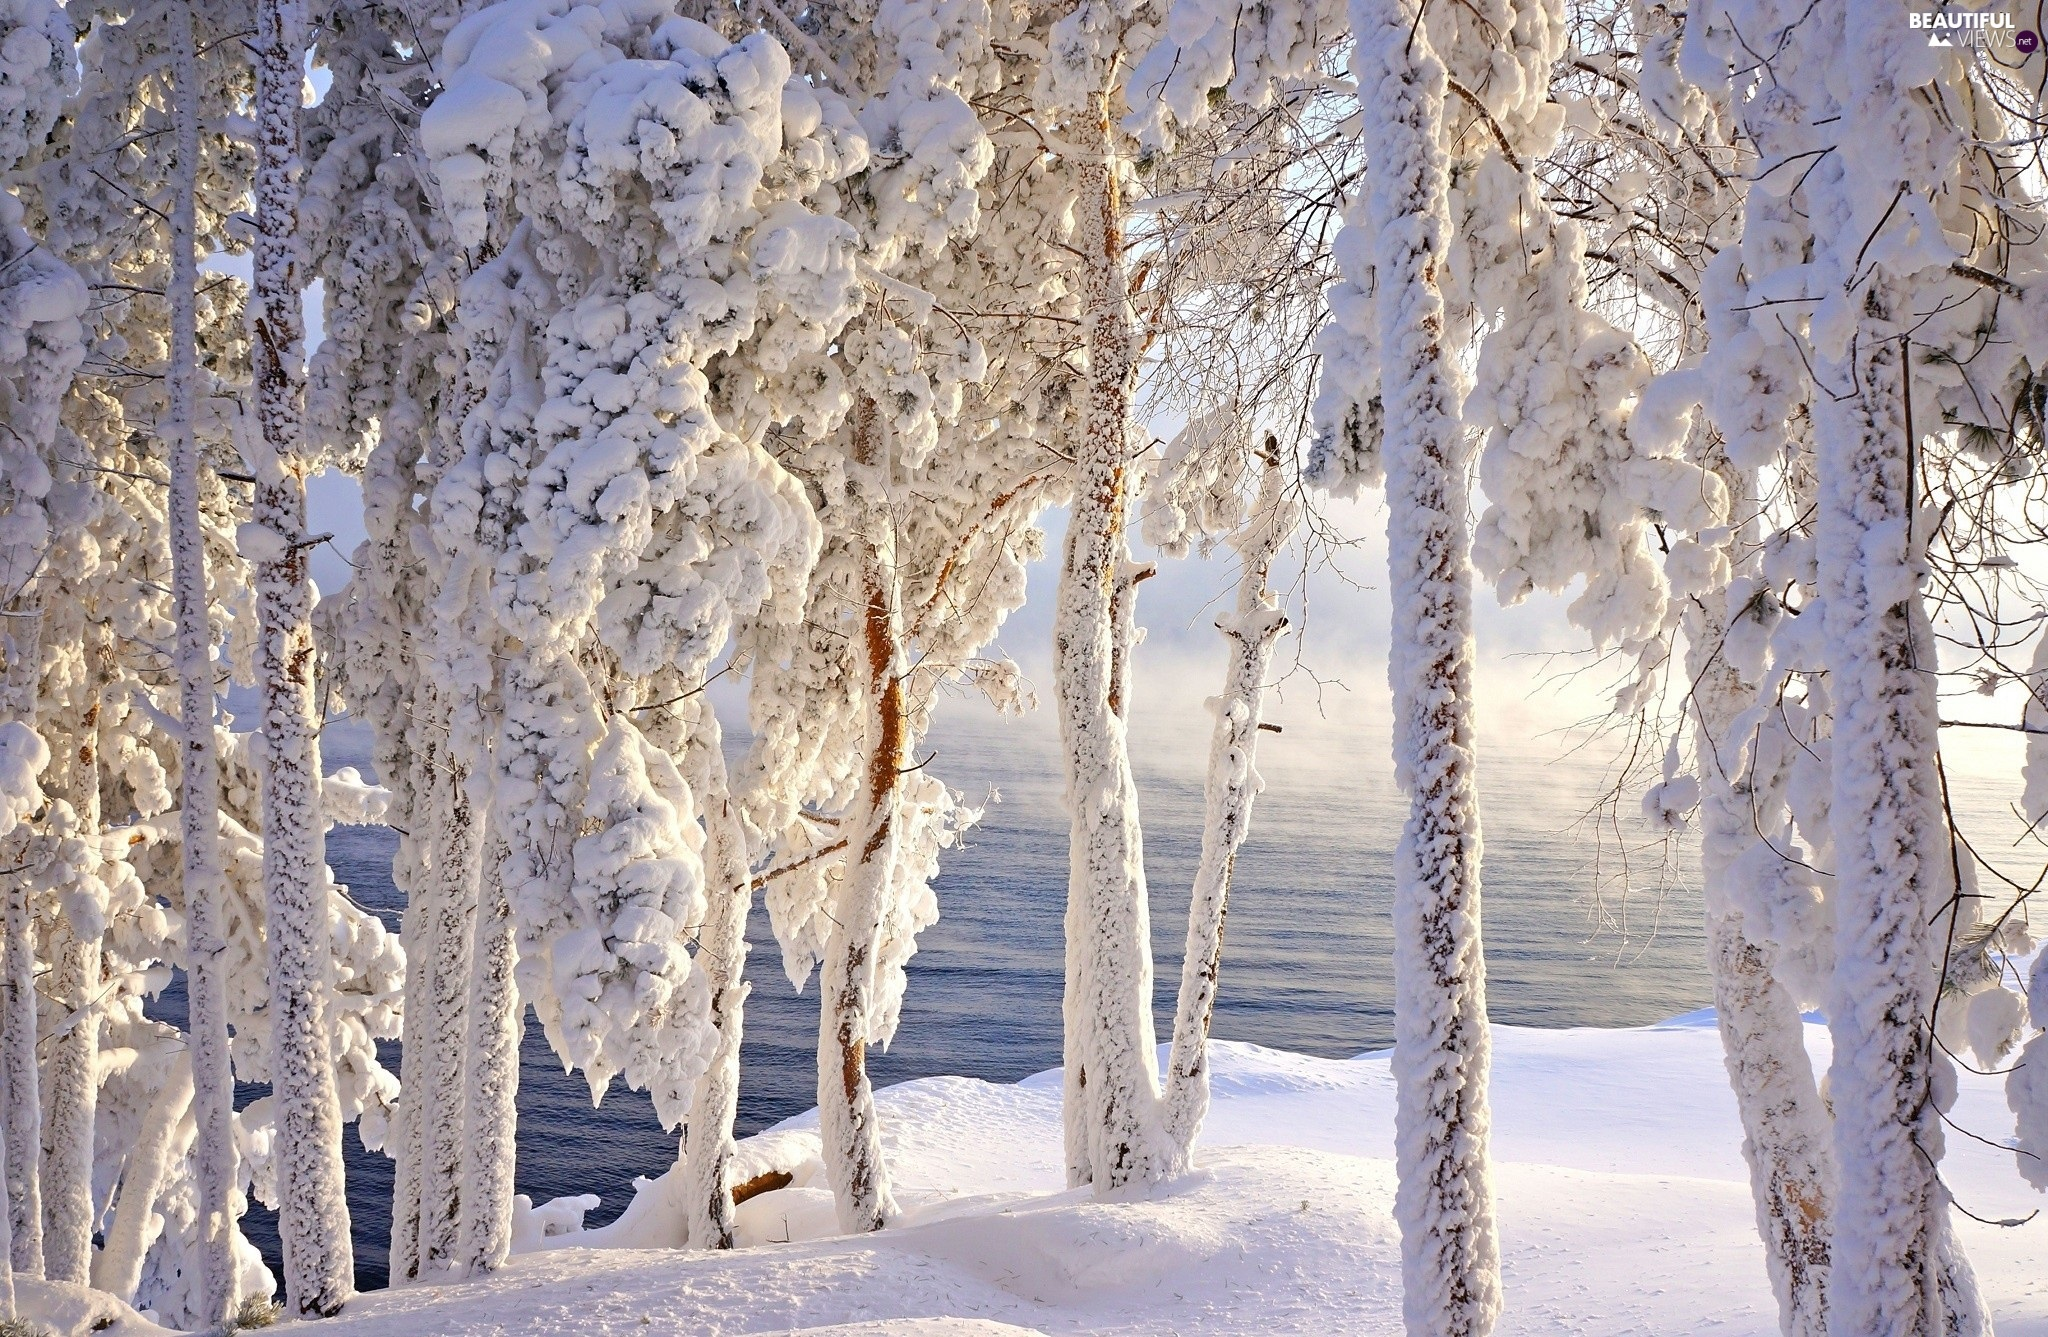 water, viewes, Snowy, trees